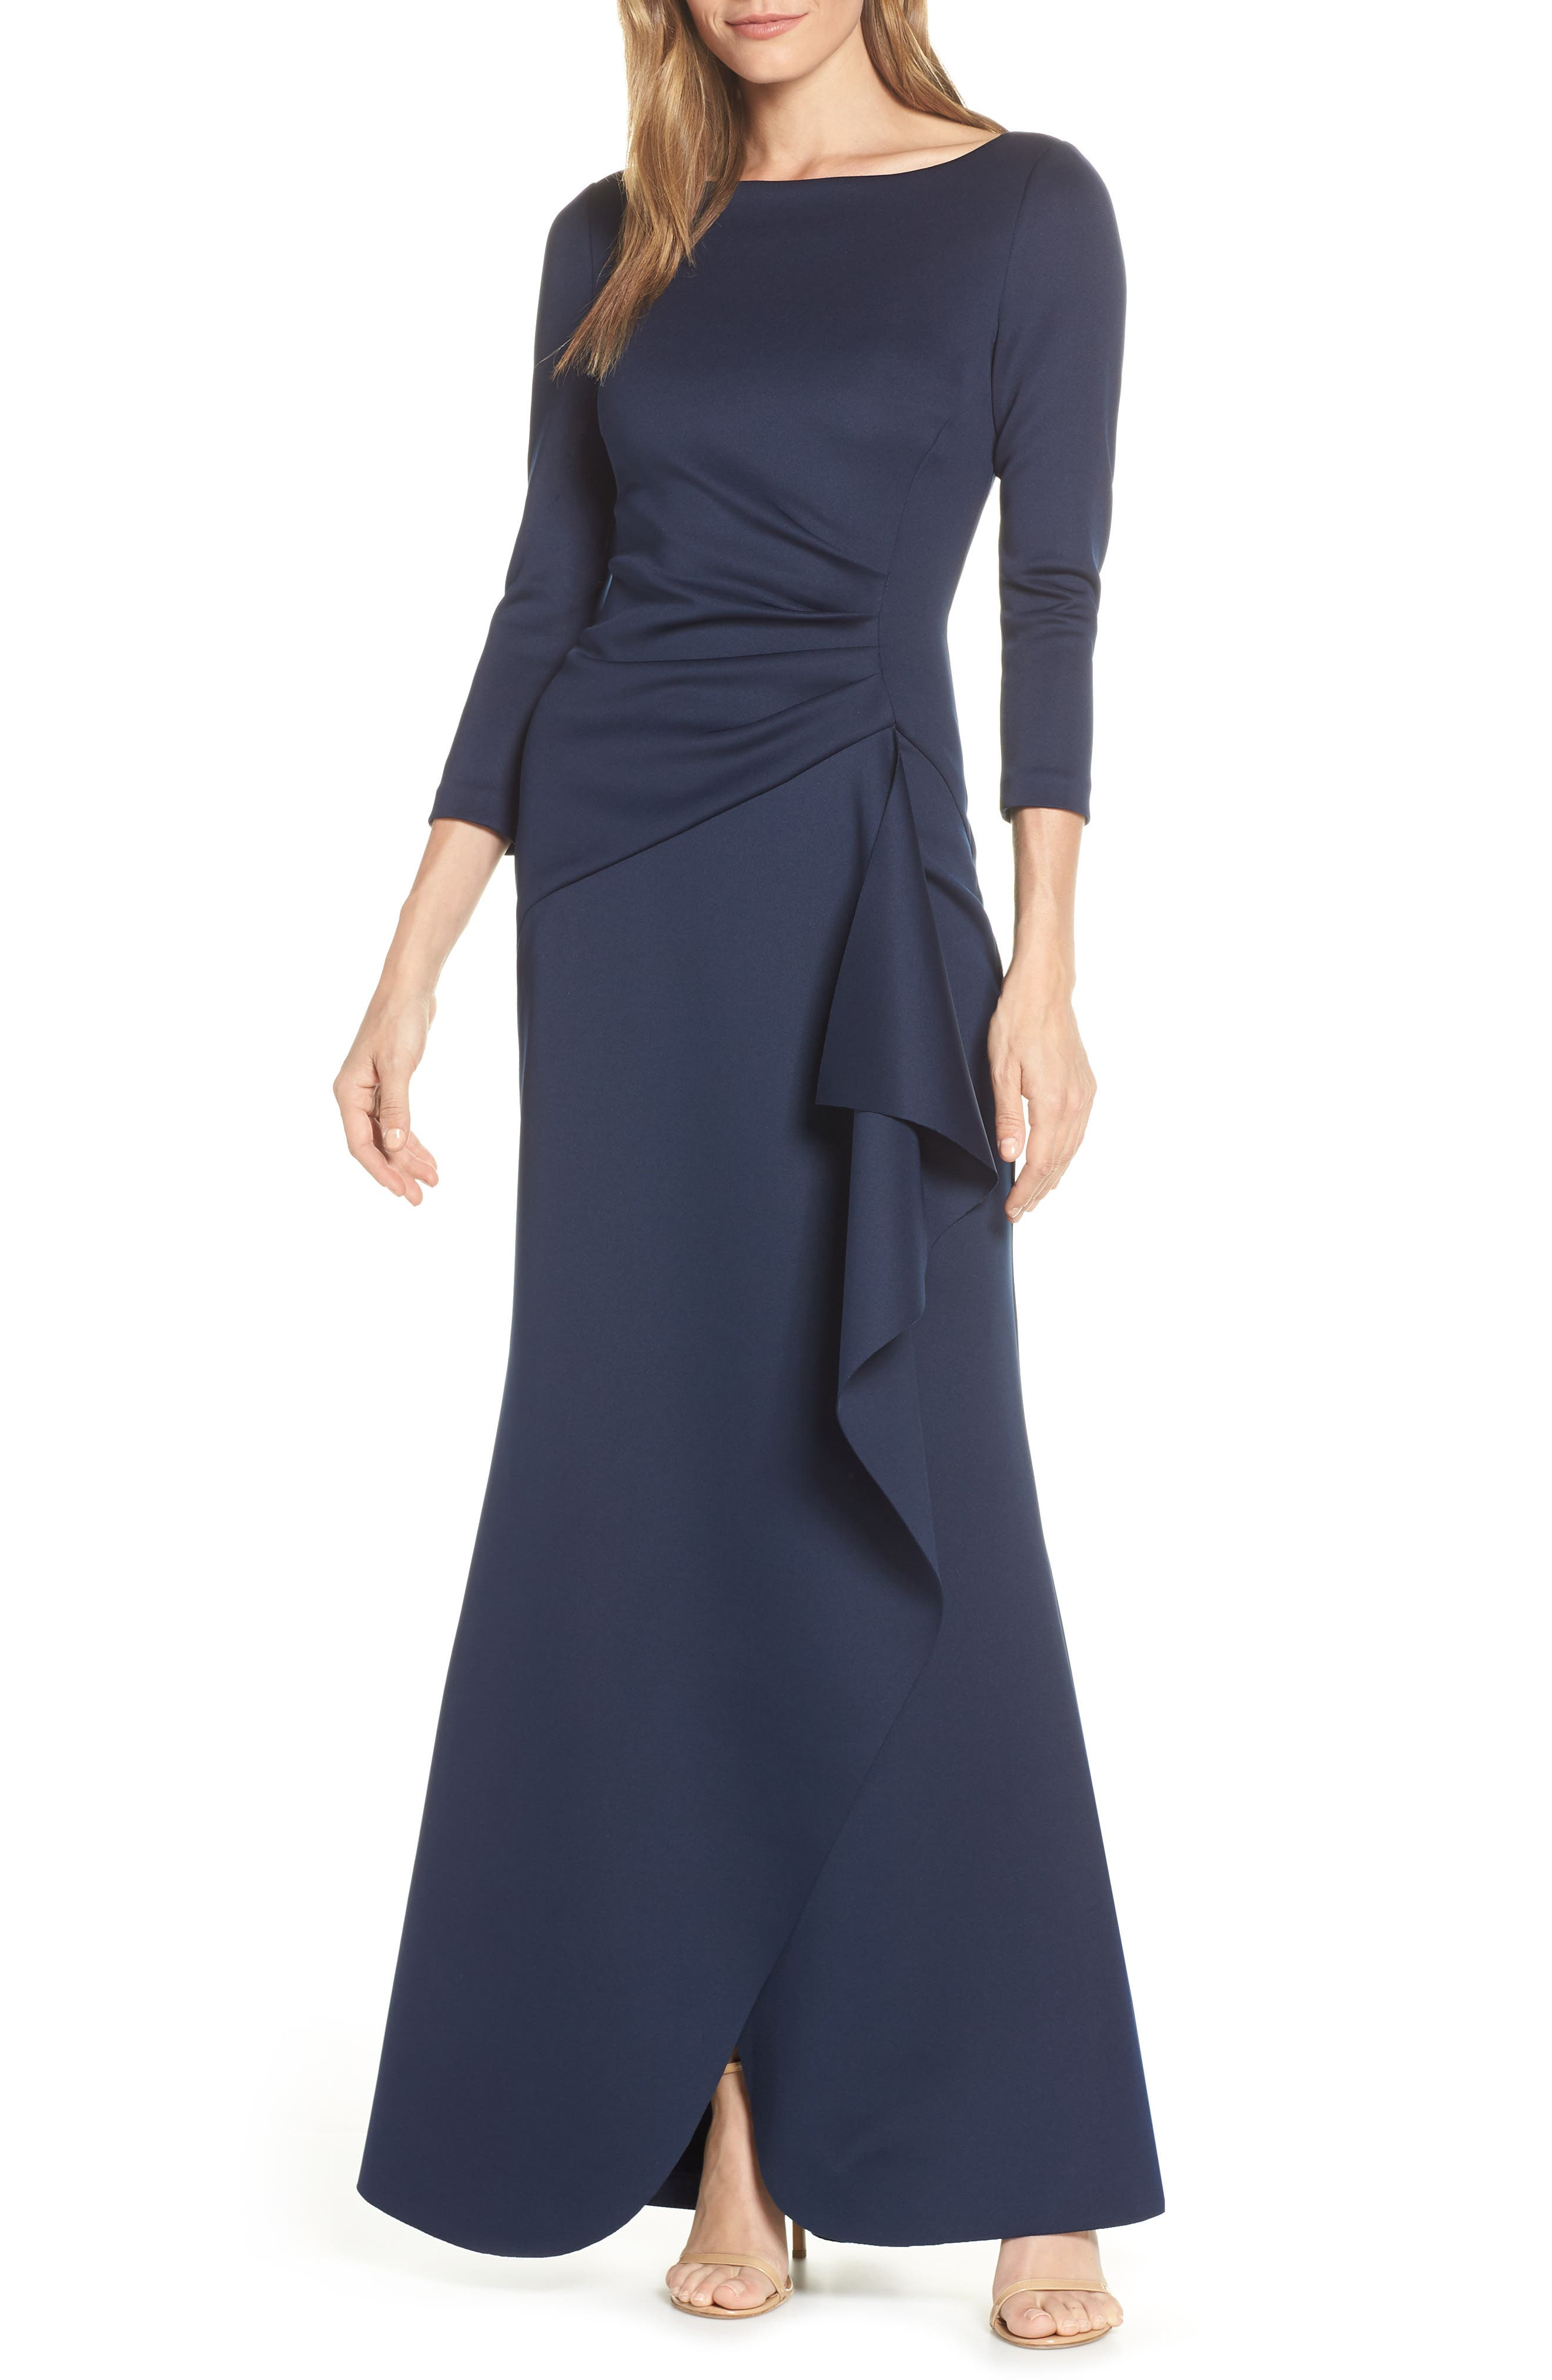 Eliza J Techno Scuba Pleat Evening Dress (Regular & Petite)